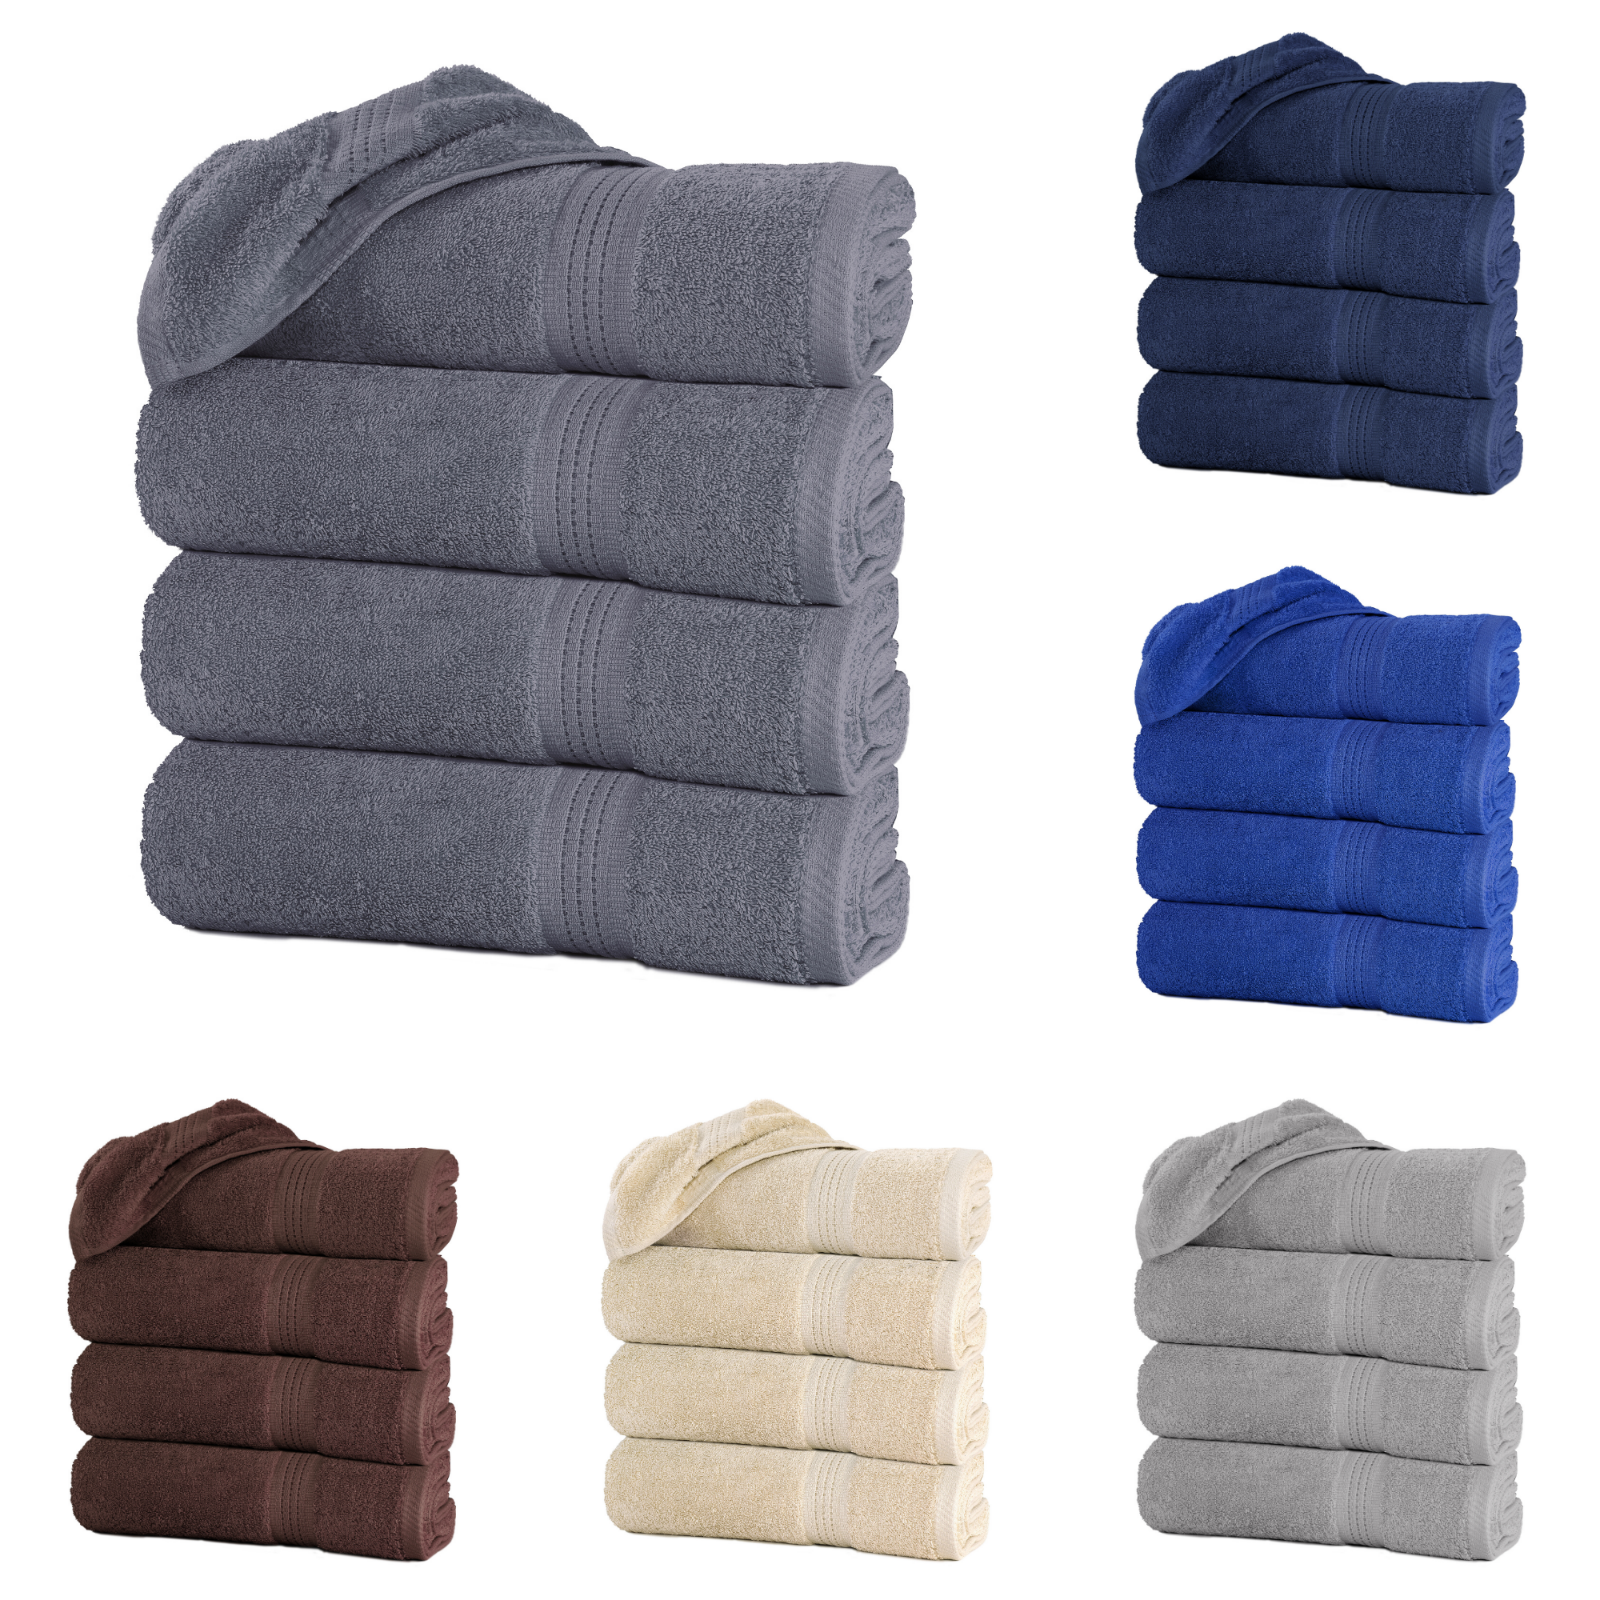 "Large Bath Towel Packs Sets Sheets 100% Cotton 27""x55"" 500 G"